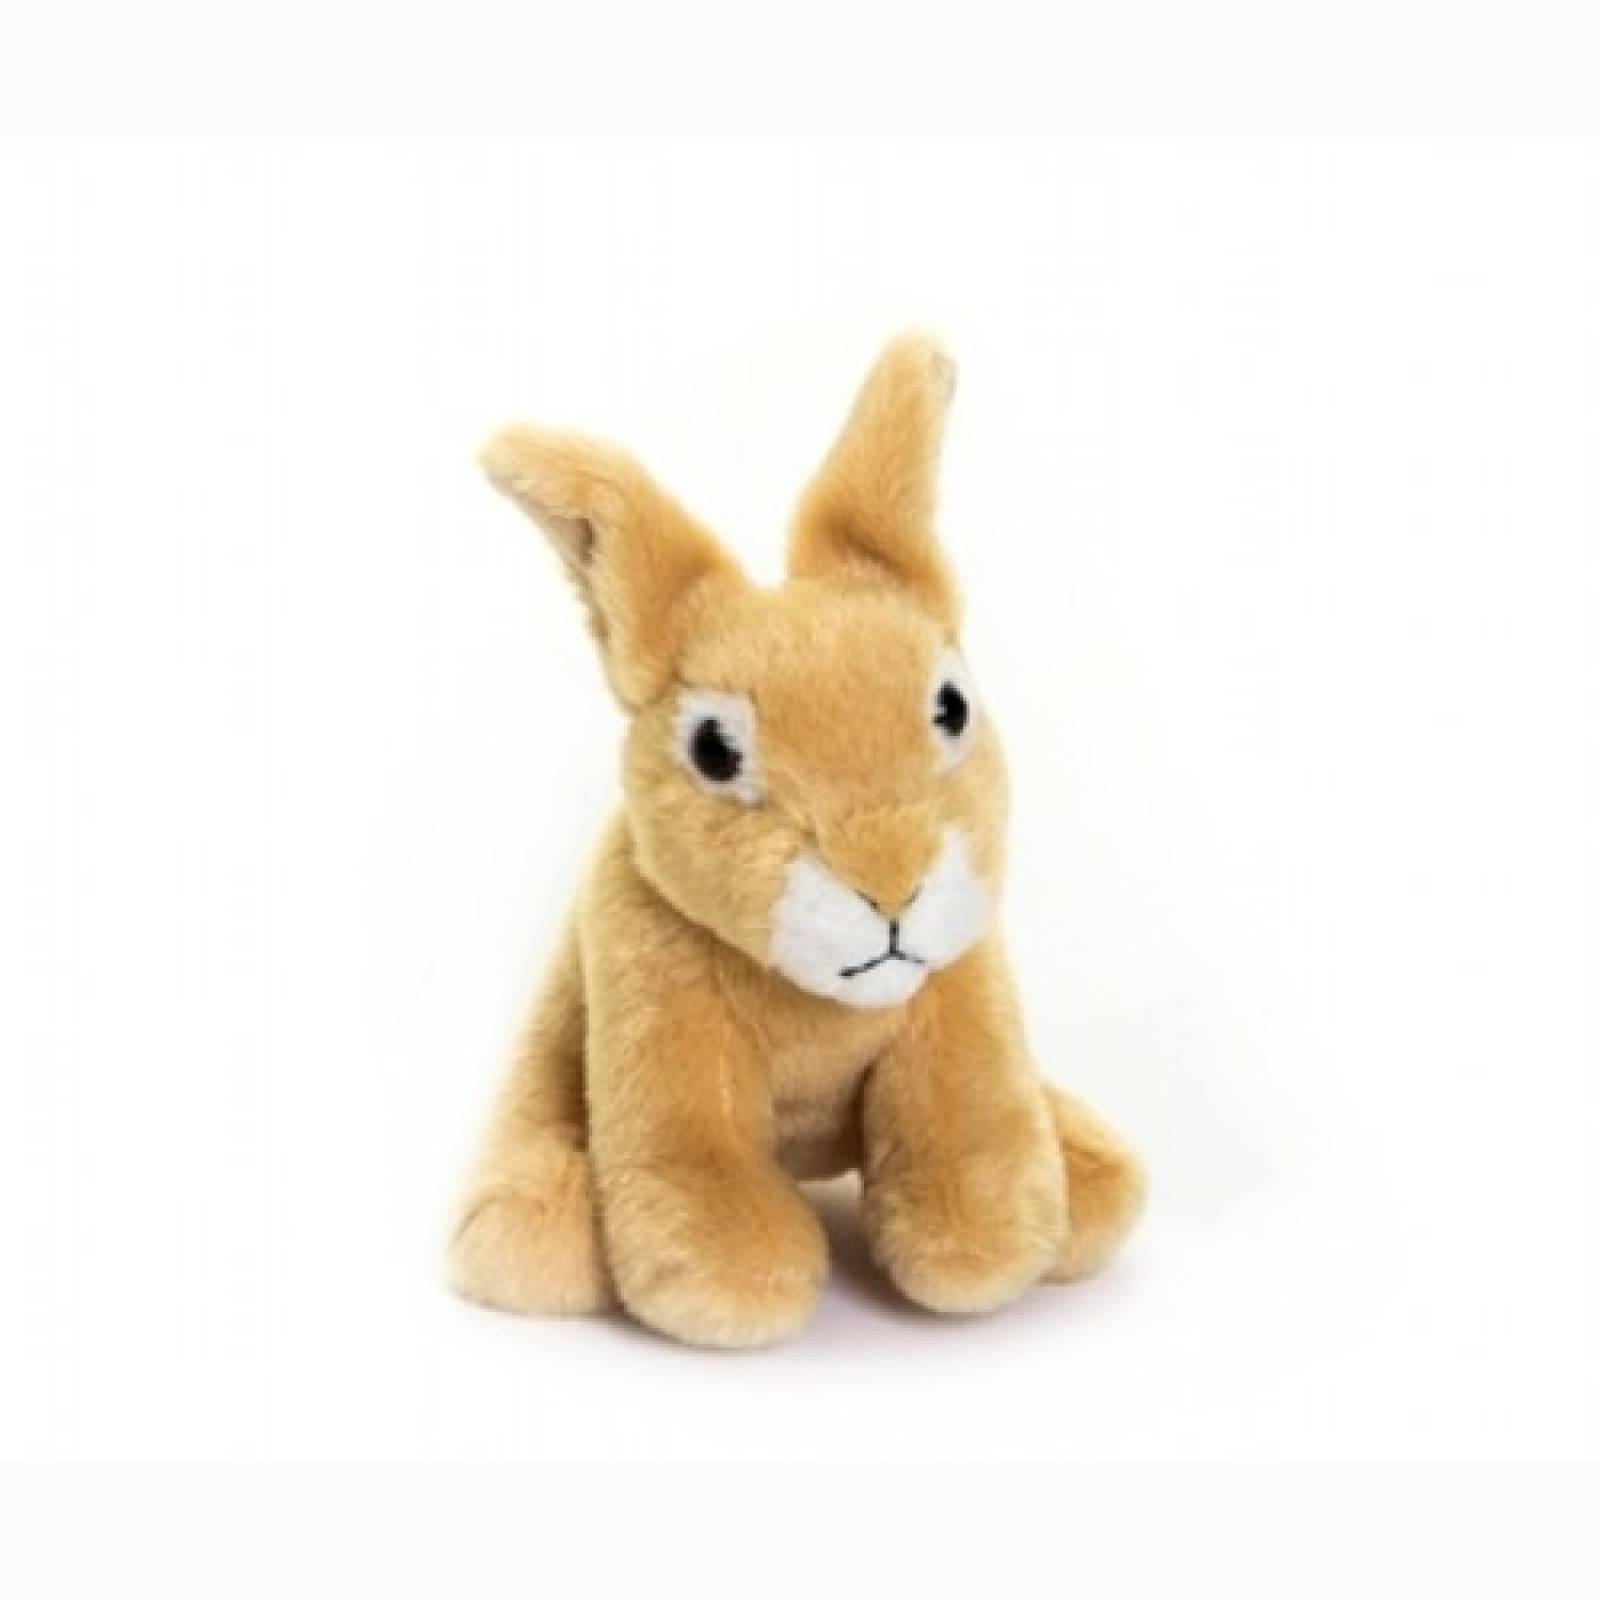 Smols Bunny Rabbit Soft Toy - Made From Recycled Plastic 0+